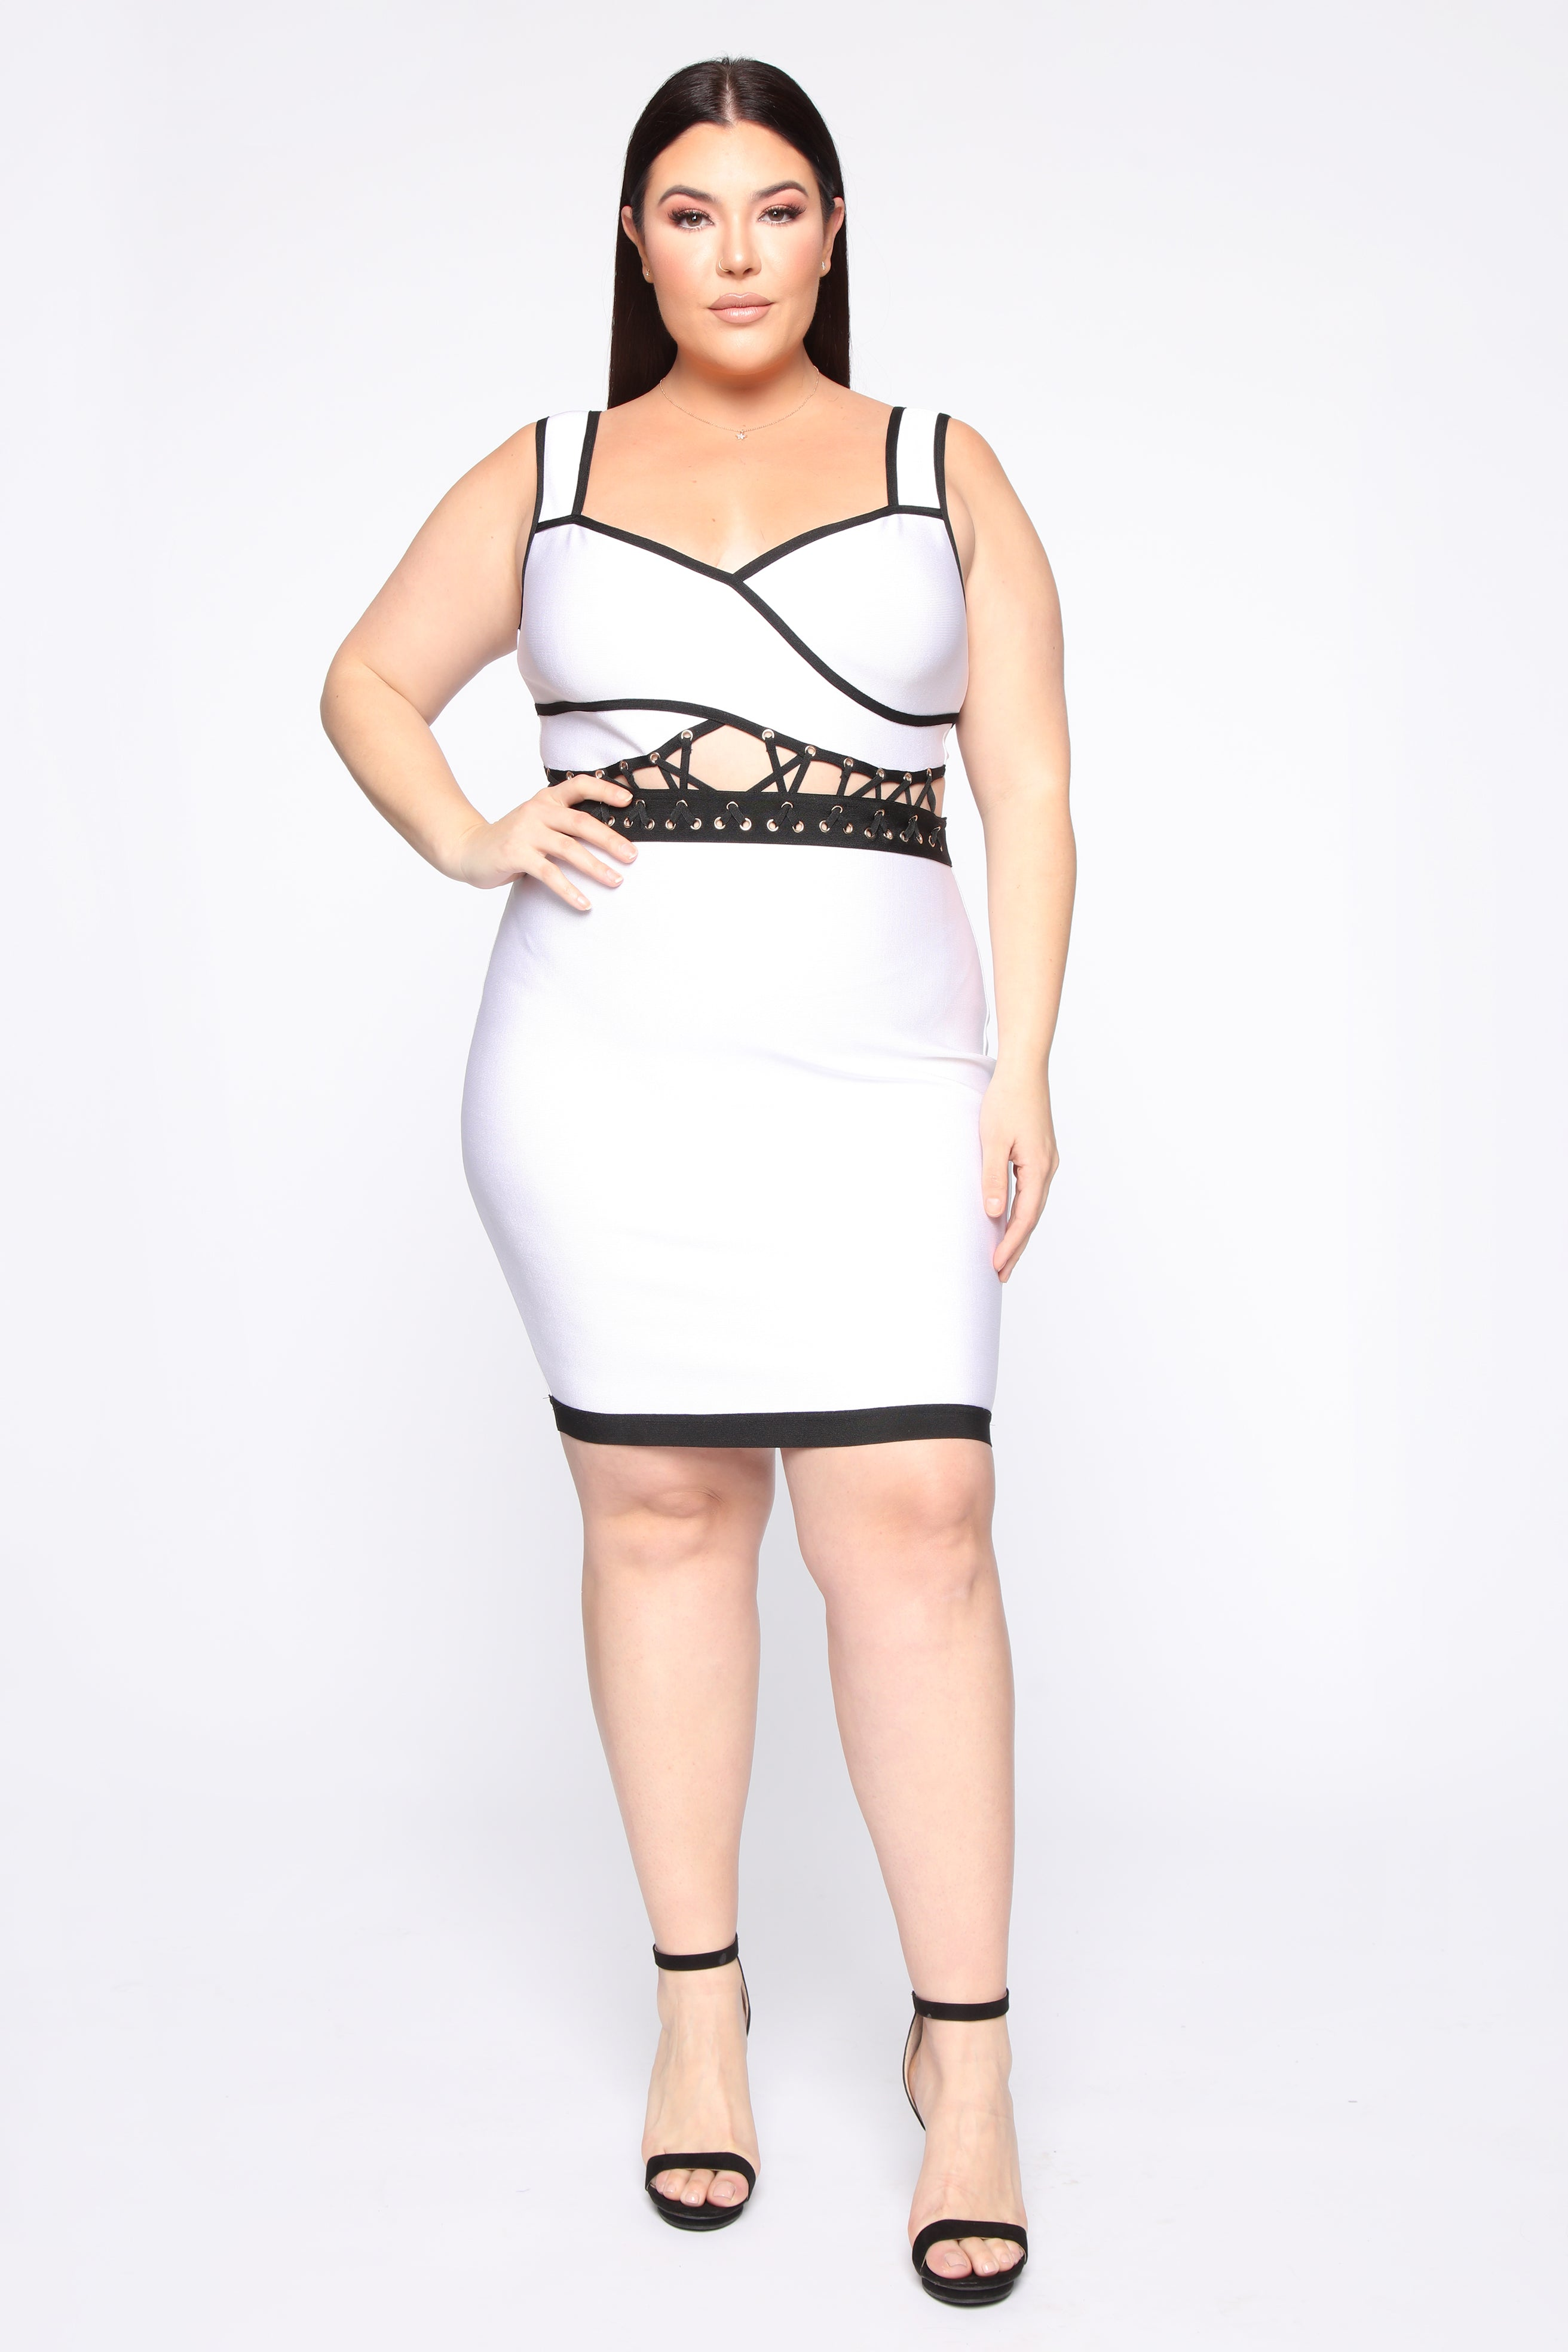 Members Only Bandage Mini Dress - White/black